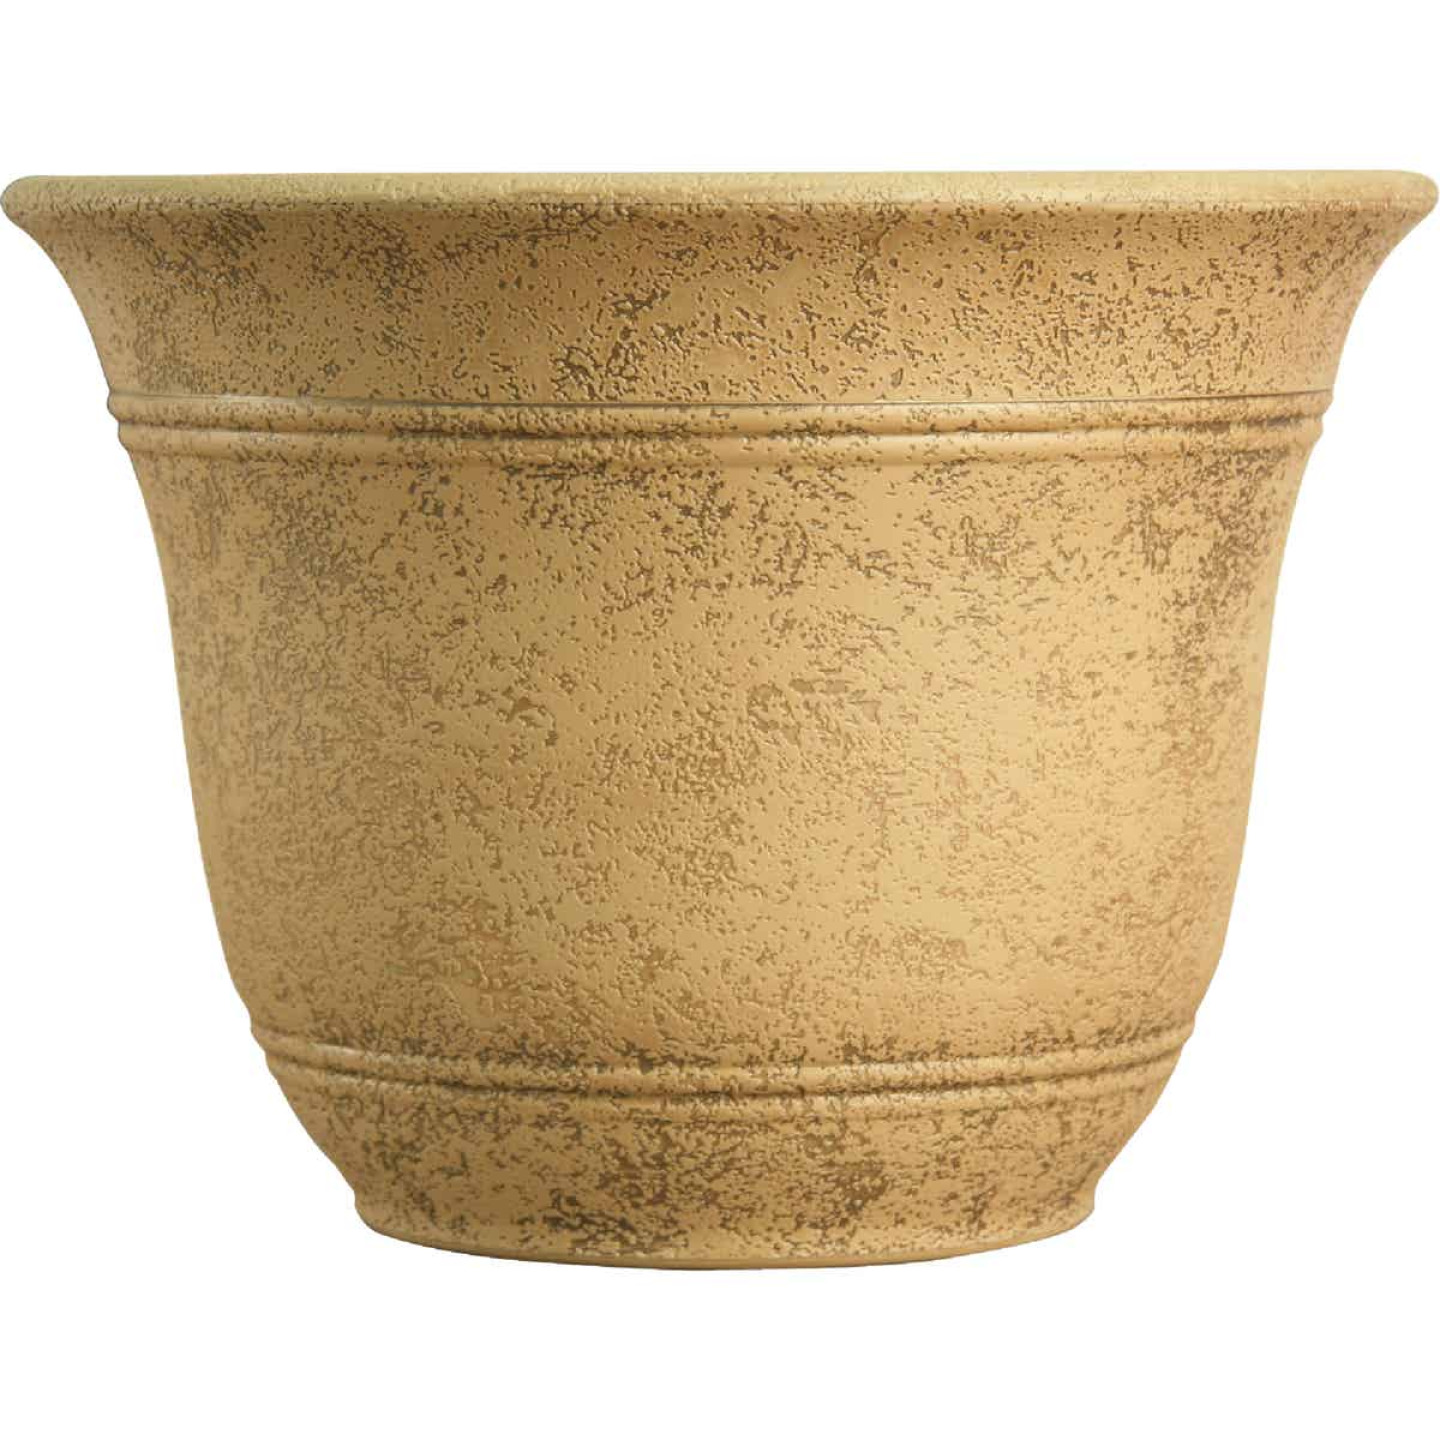 Listo Sierra 11-3/4 In. H. x 16 In. Dia. Arizona Sand Poly Flower Pot Image 1